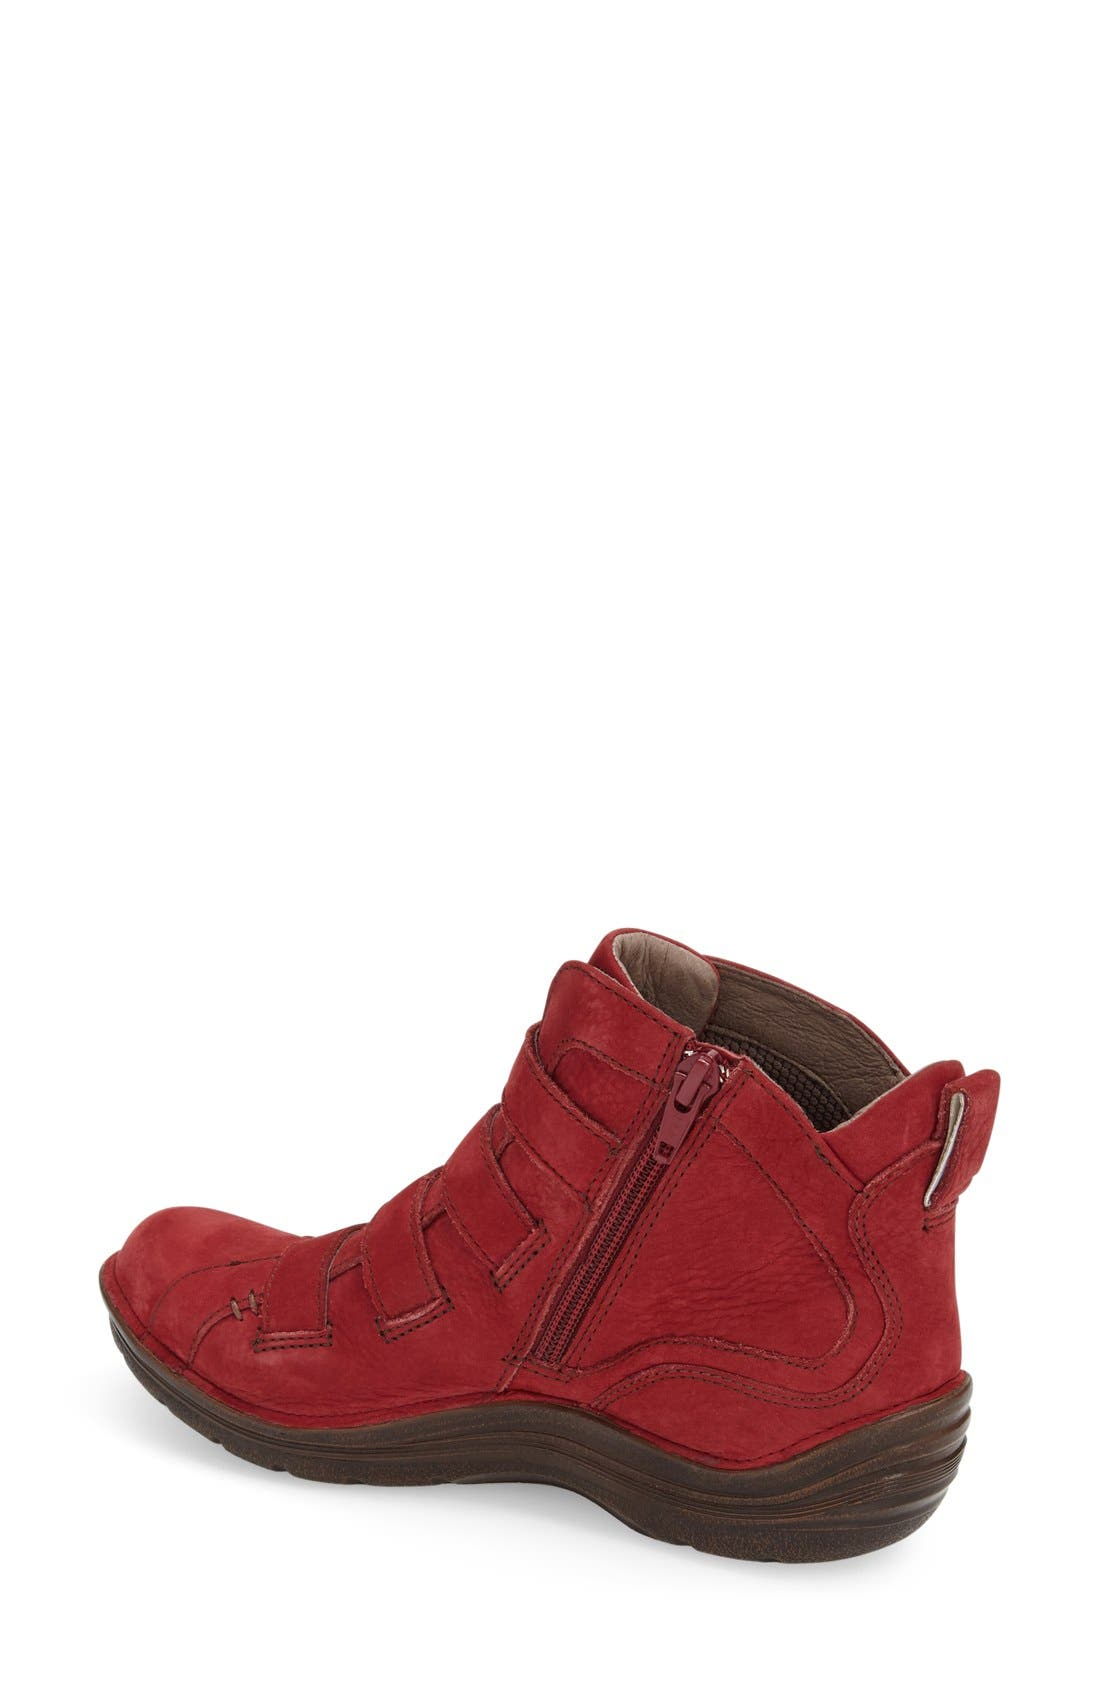 'Orion' Bootie,                             Alternate thumbnail 2, color,                             Red Leather